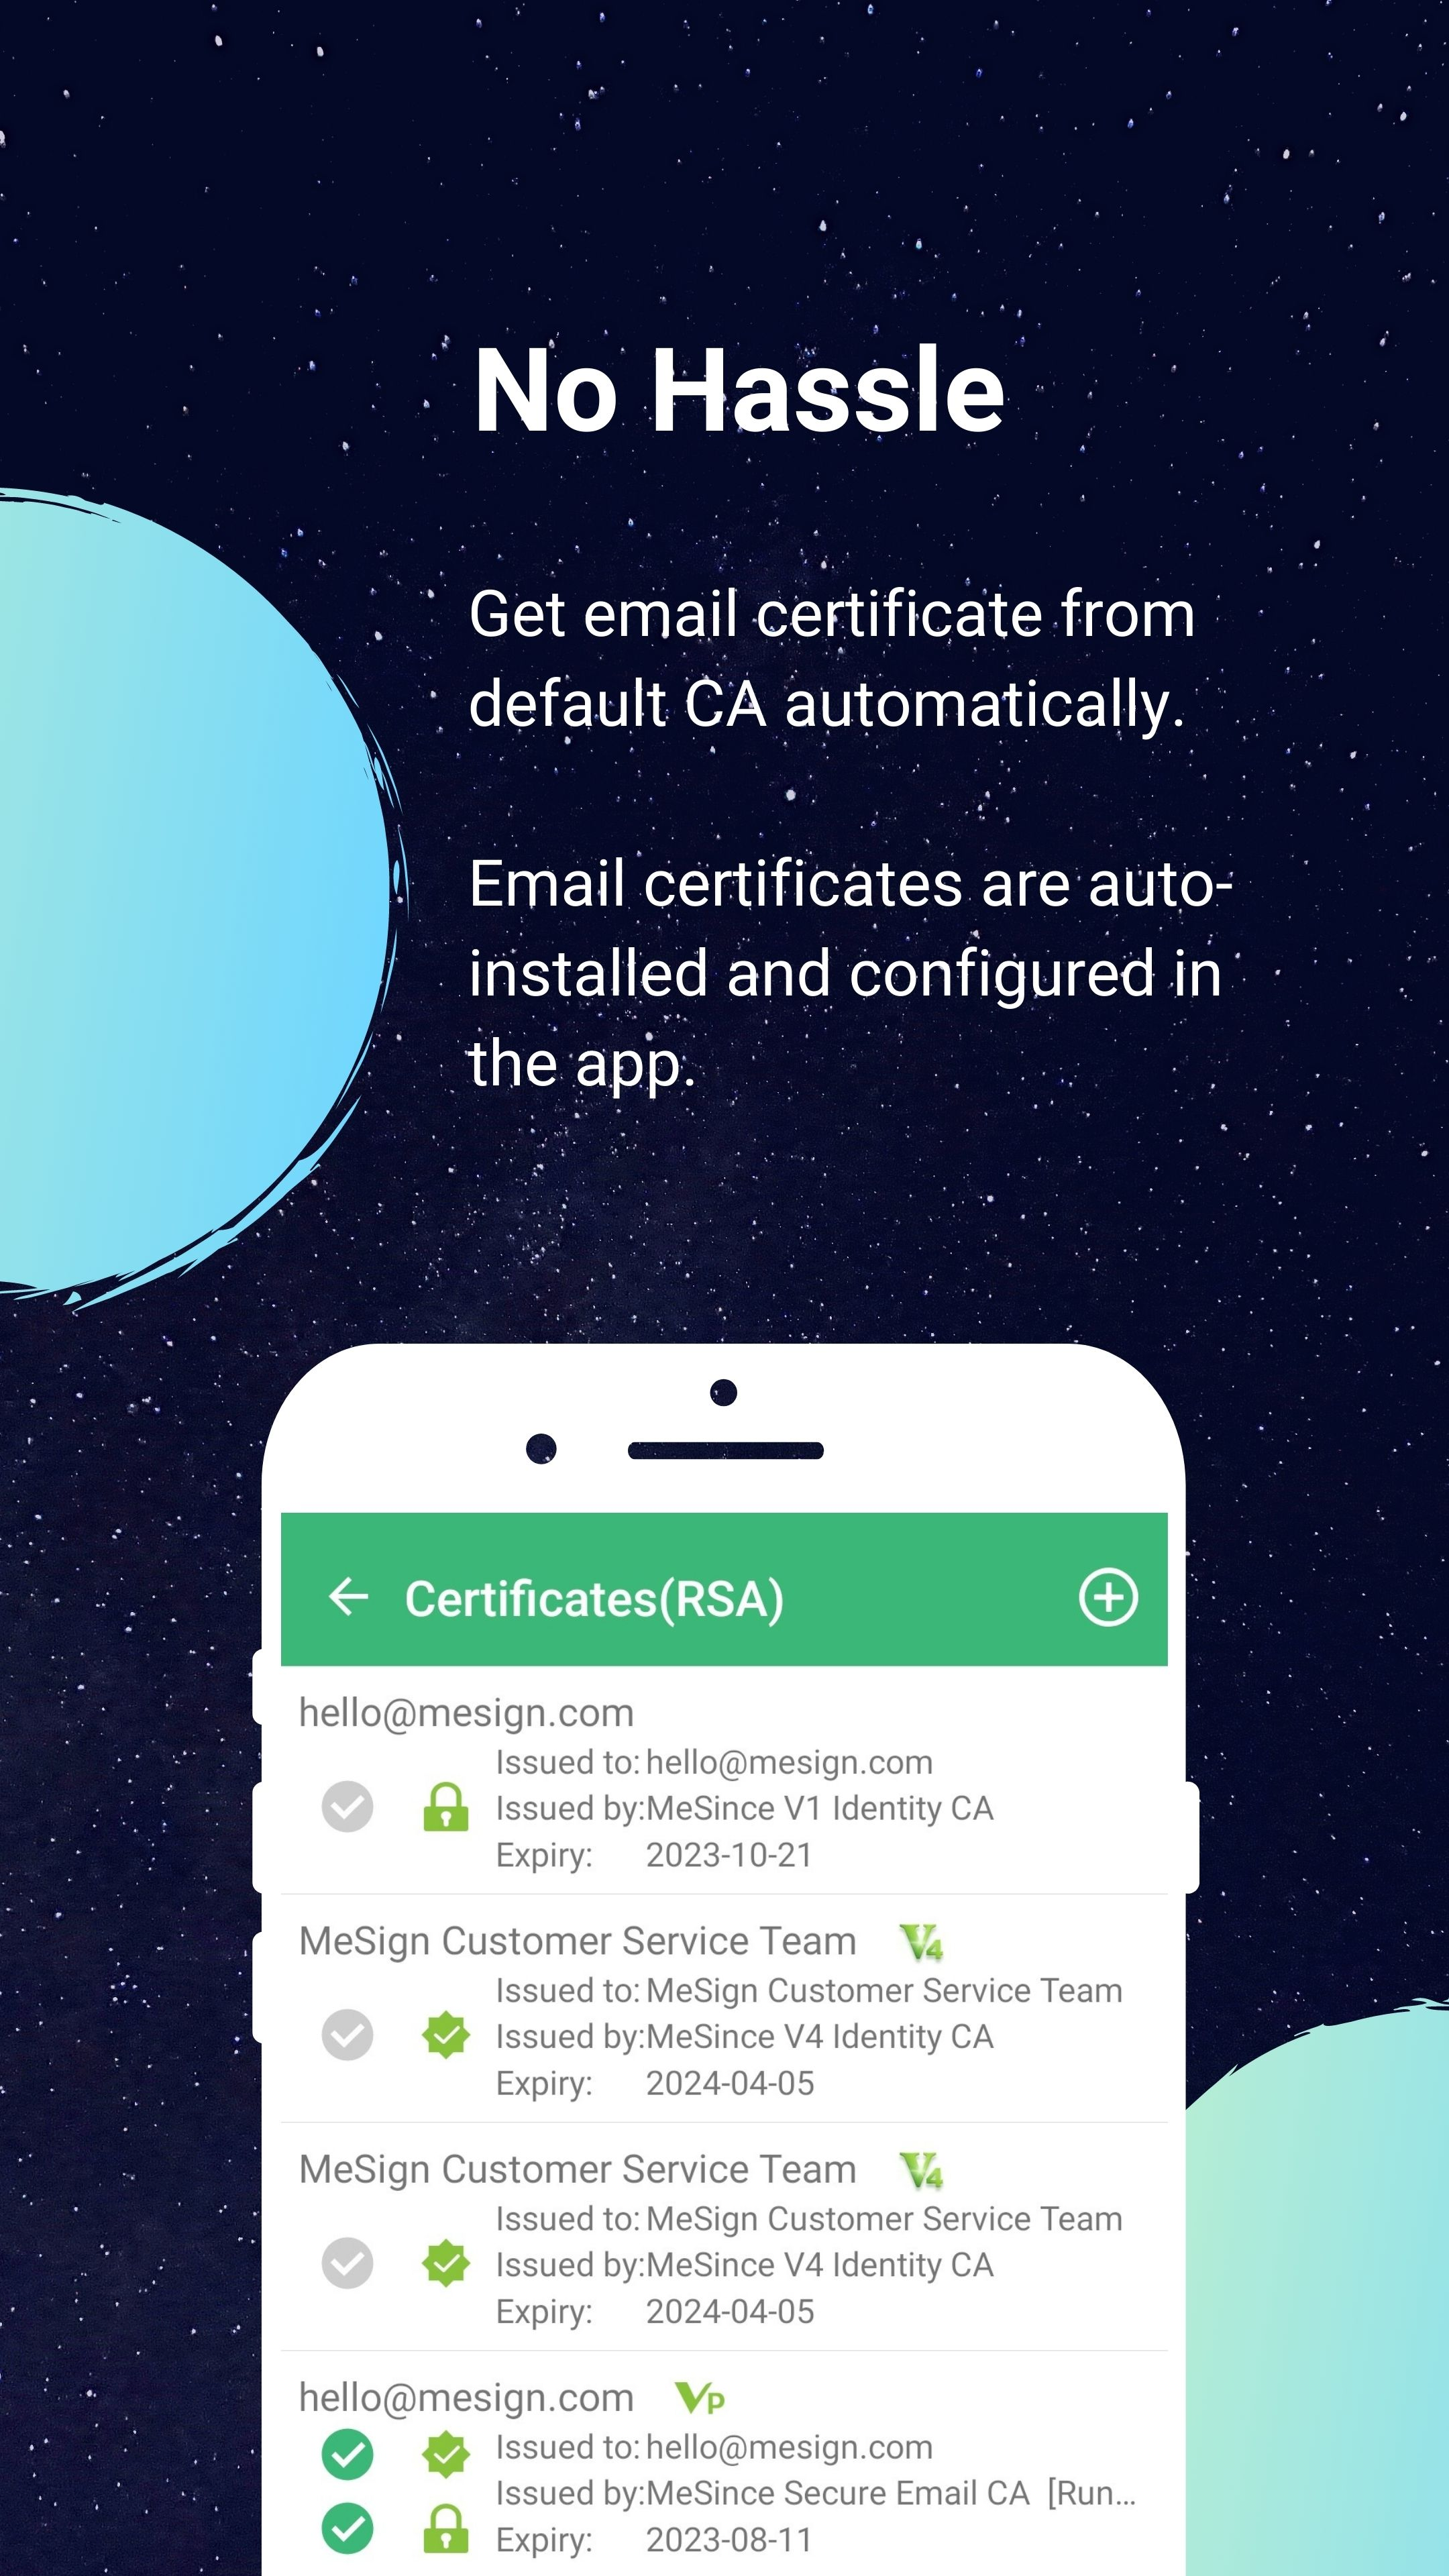 Email certificates automation. Certificates are collected, installed and configured automatically by MeSign app in minutes.